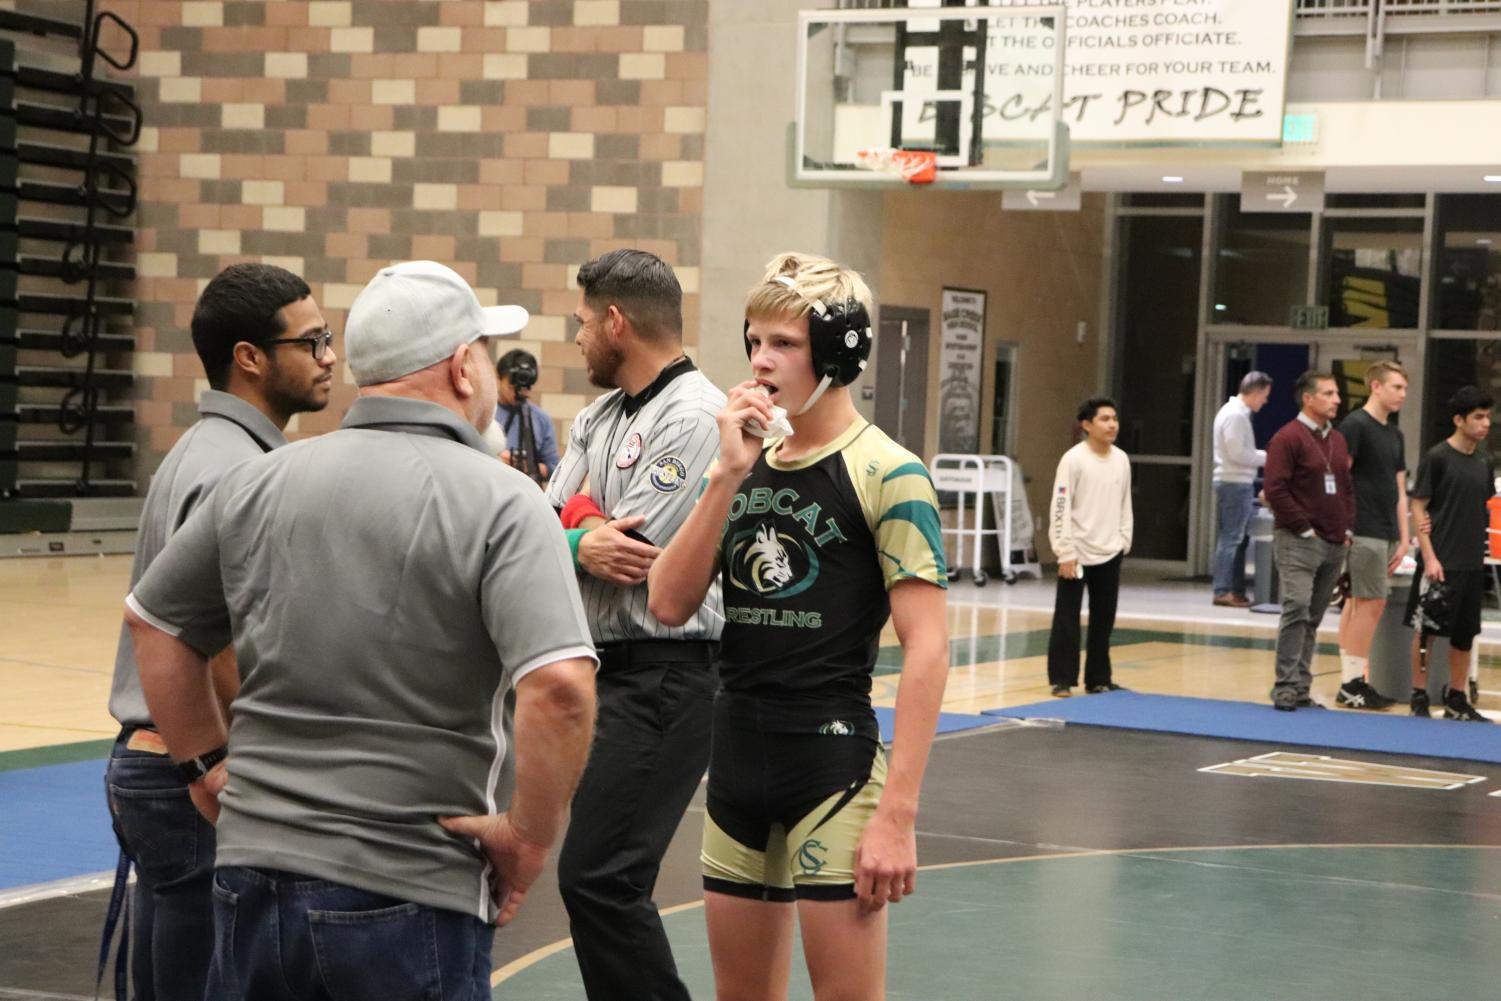 Freshman+Peter+Rubin+holds+a+paper+towel+on+his+mouth+to+stop+his+lip+from+bleeding.+At+wrestlings+home+duel+on+Thursday%2C+Jan.+10++against+Rancho+Buena+Vista%2C+Rubin%E2%80%99s+match+was+stopped+numerous+times+due+to+his+mouth+bleeding.+